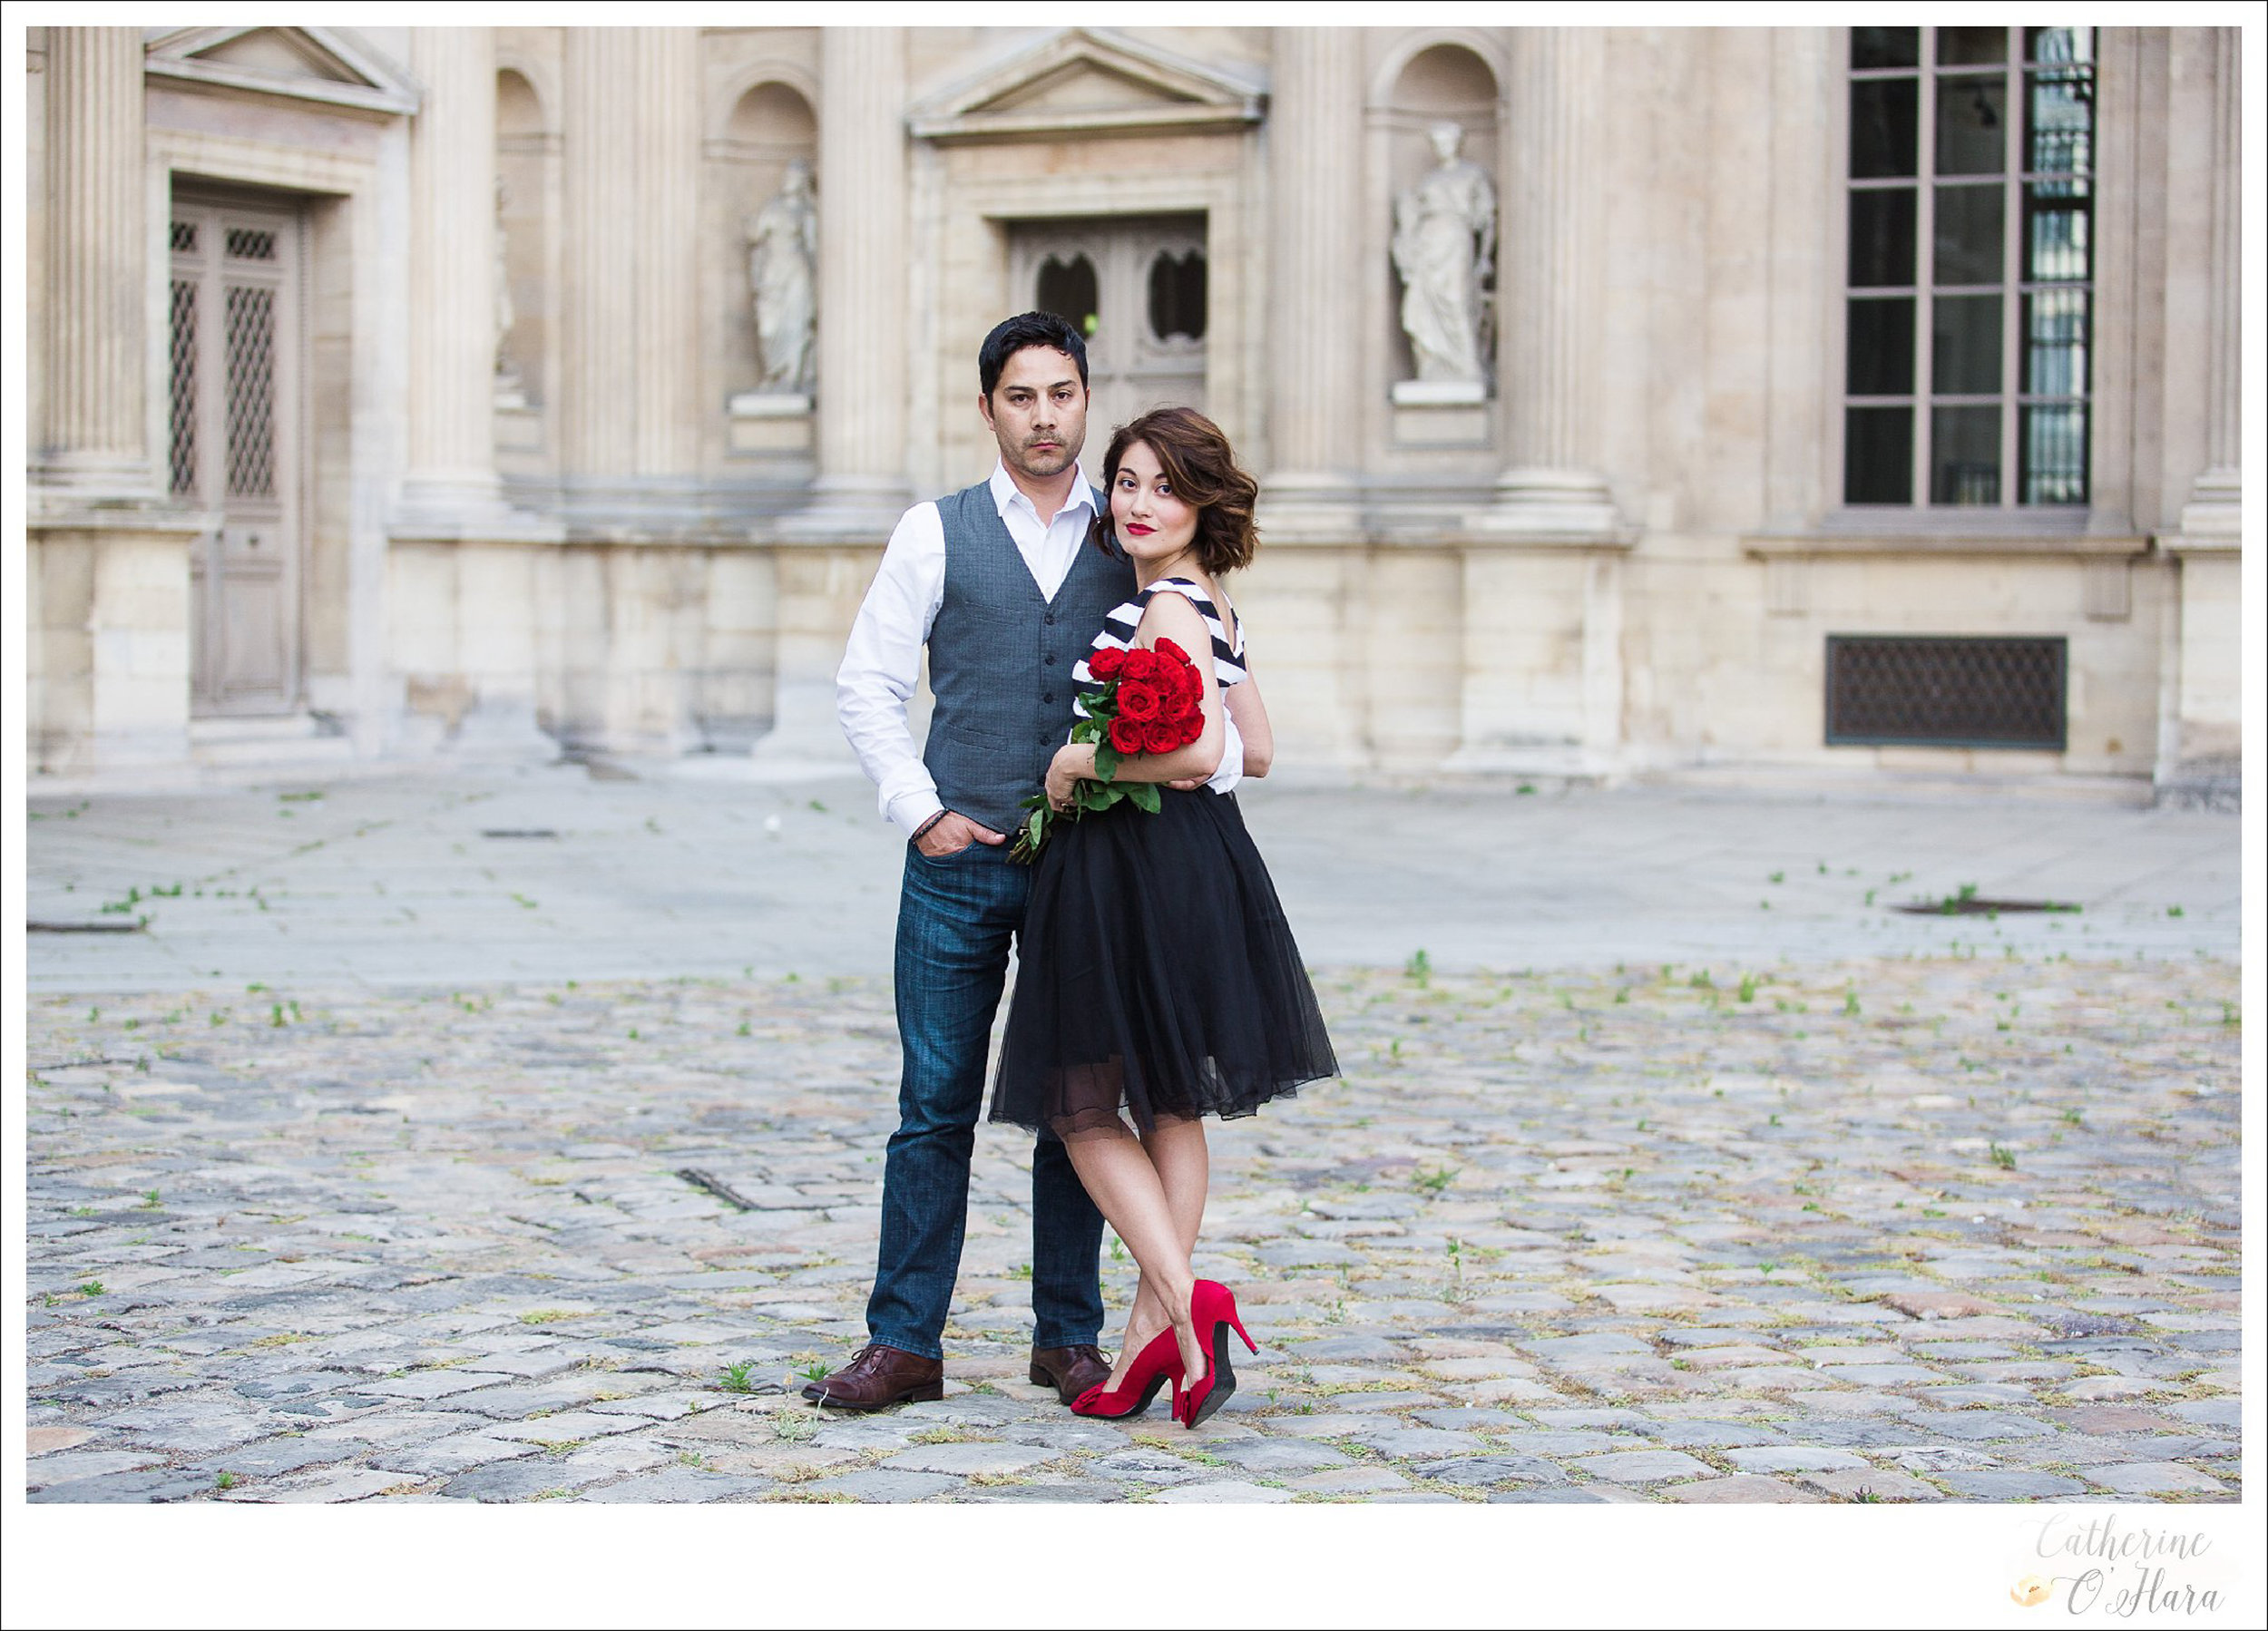 11-paris-engagement-photographer-france.jpg